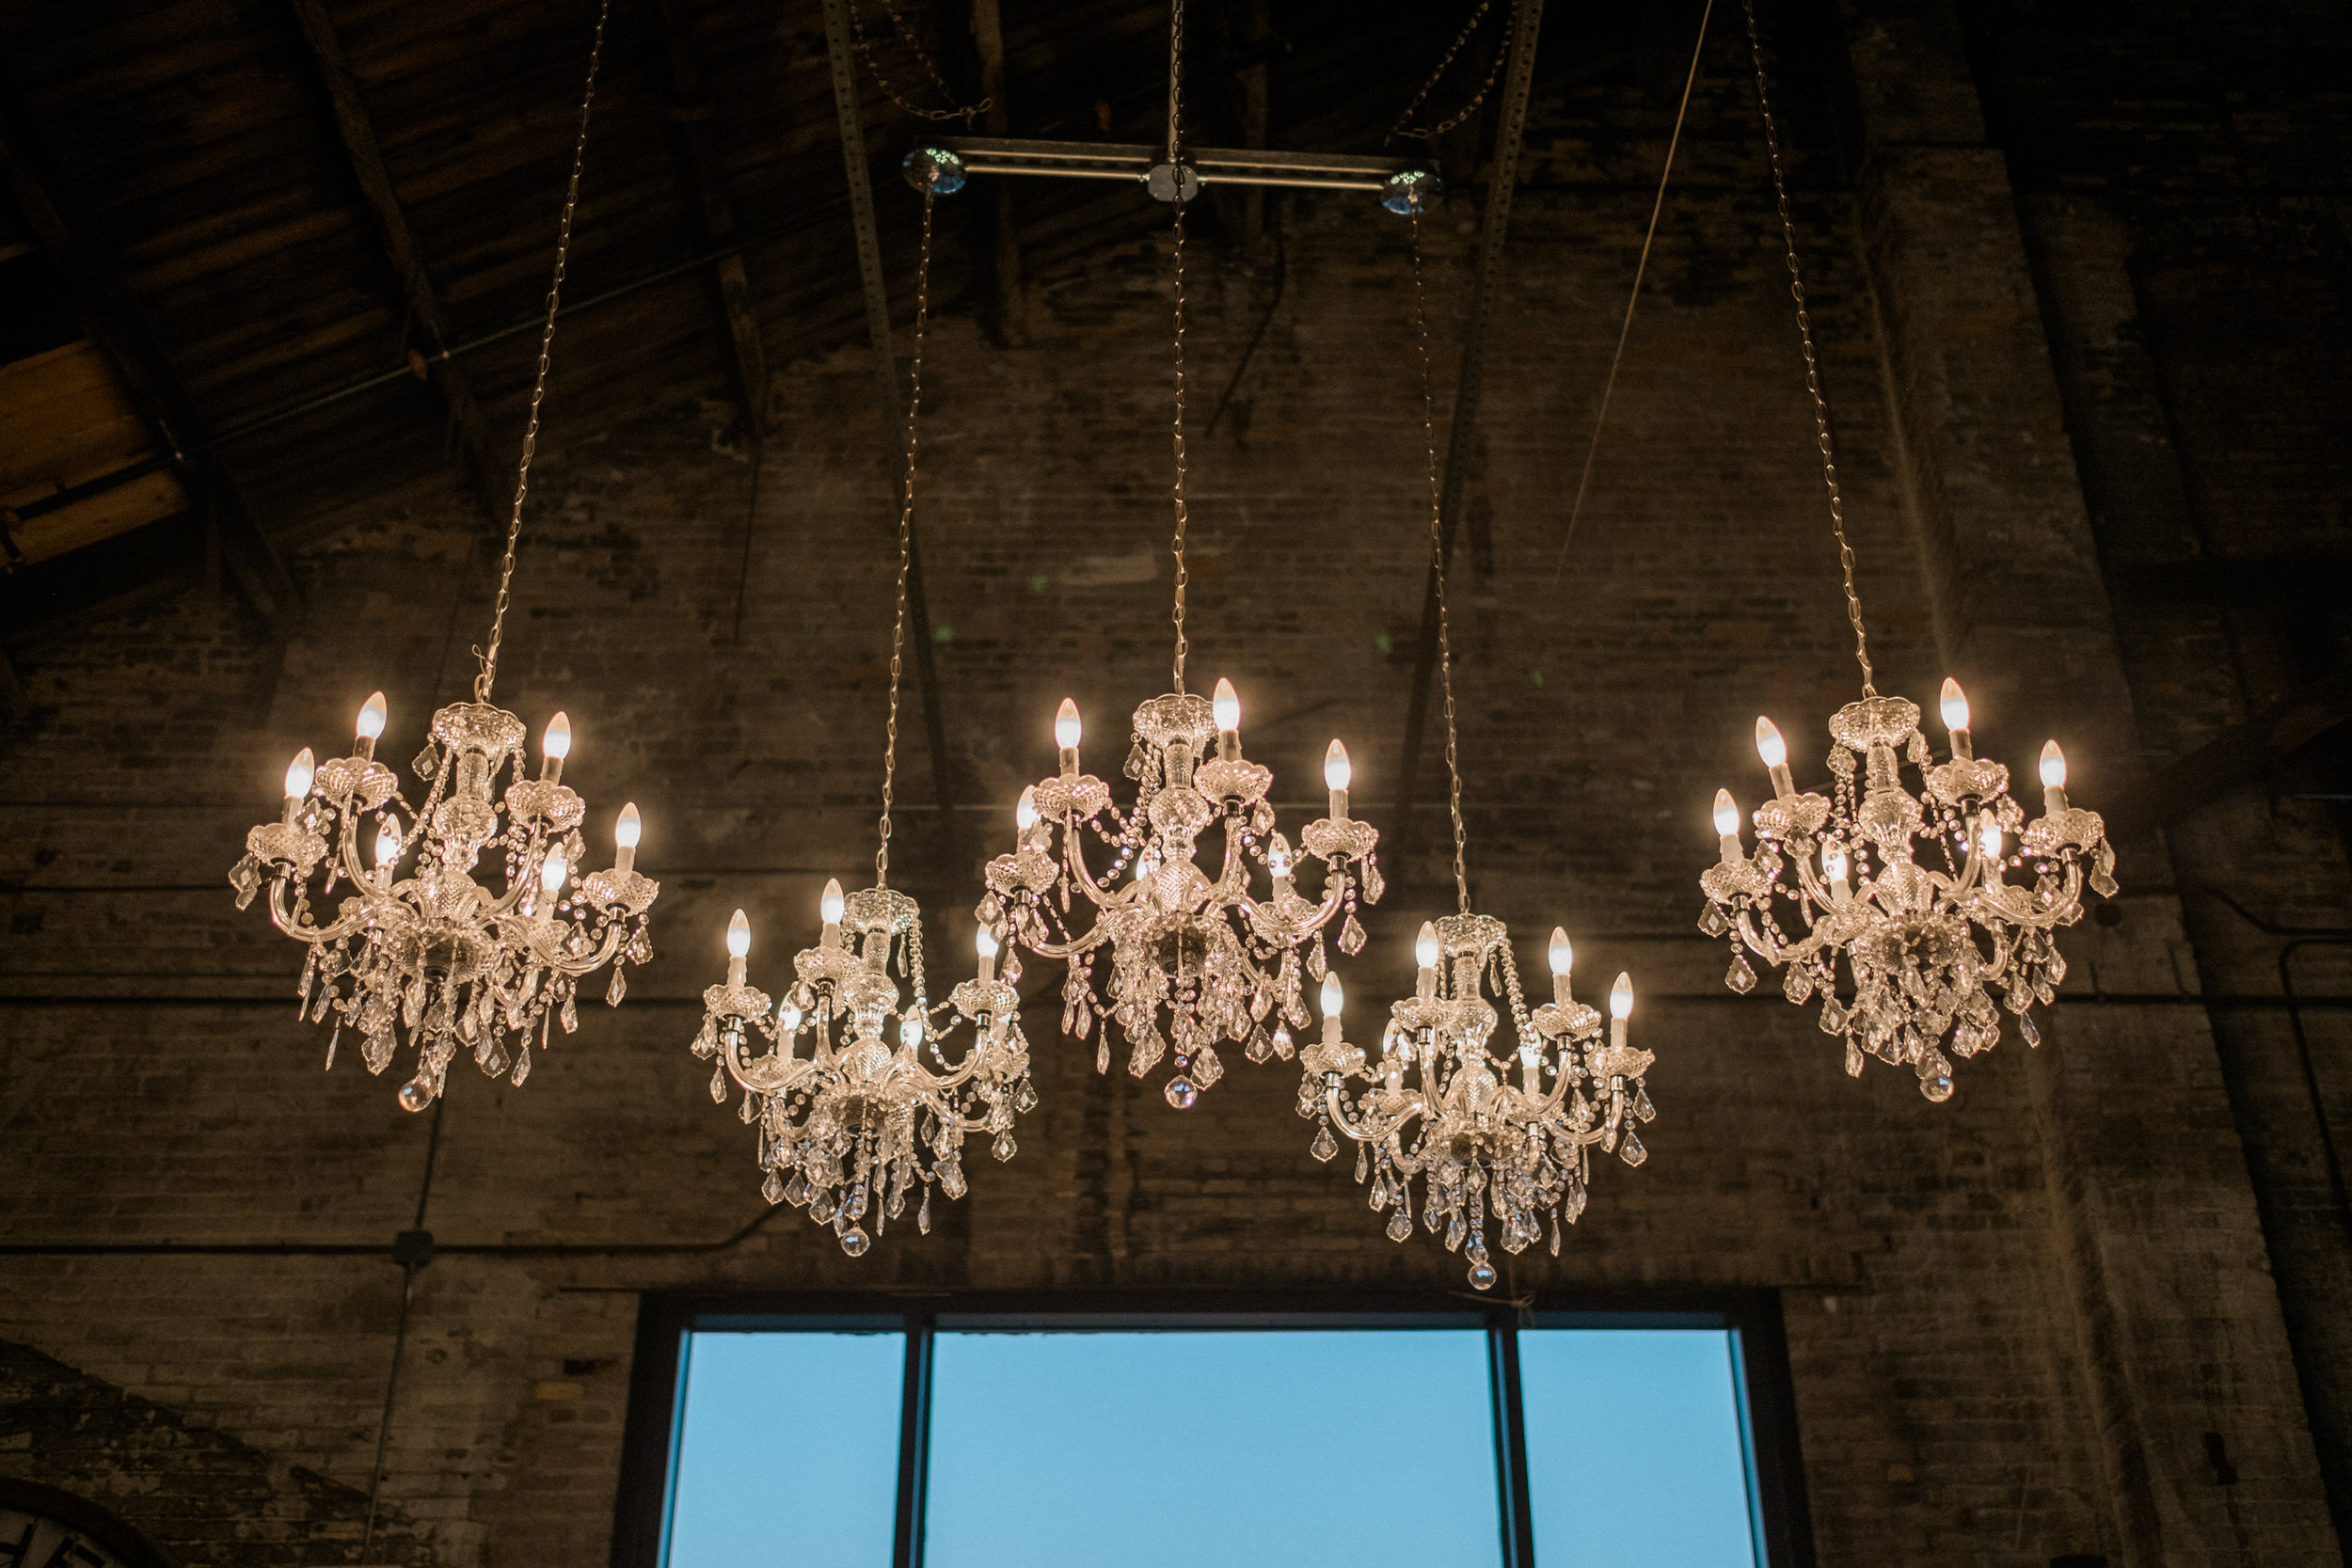 chandeliers over the entrance at the np space